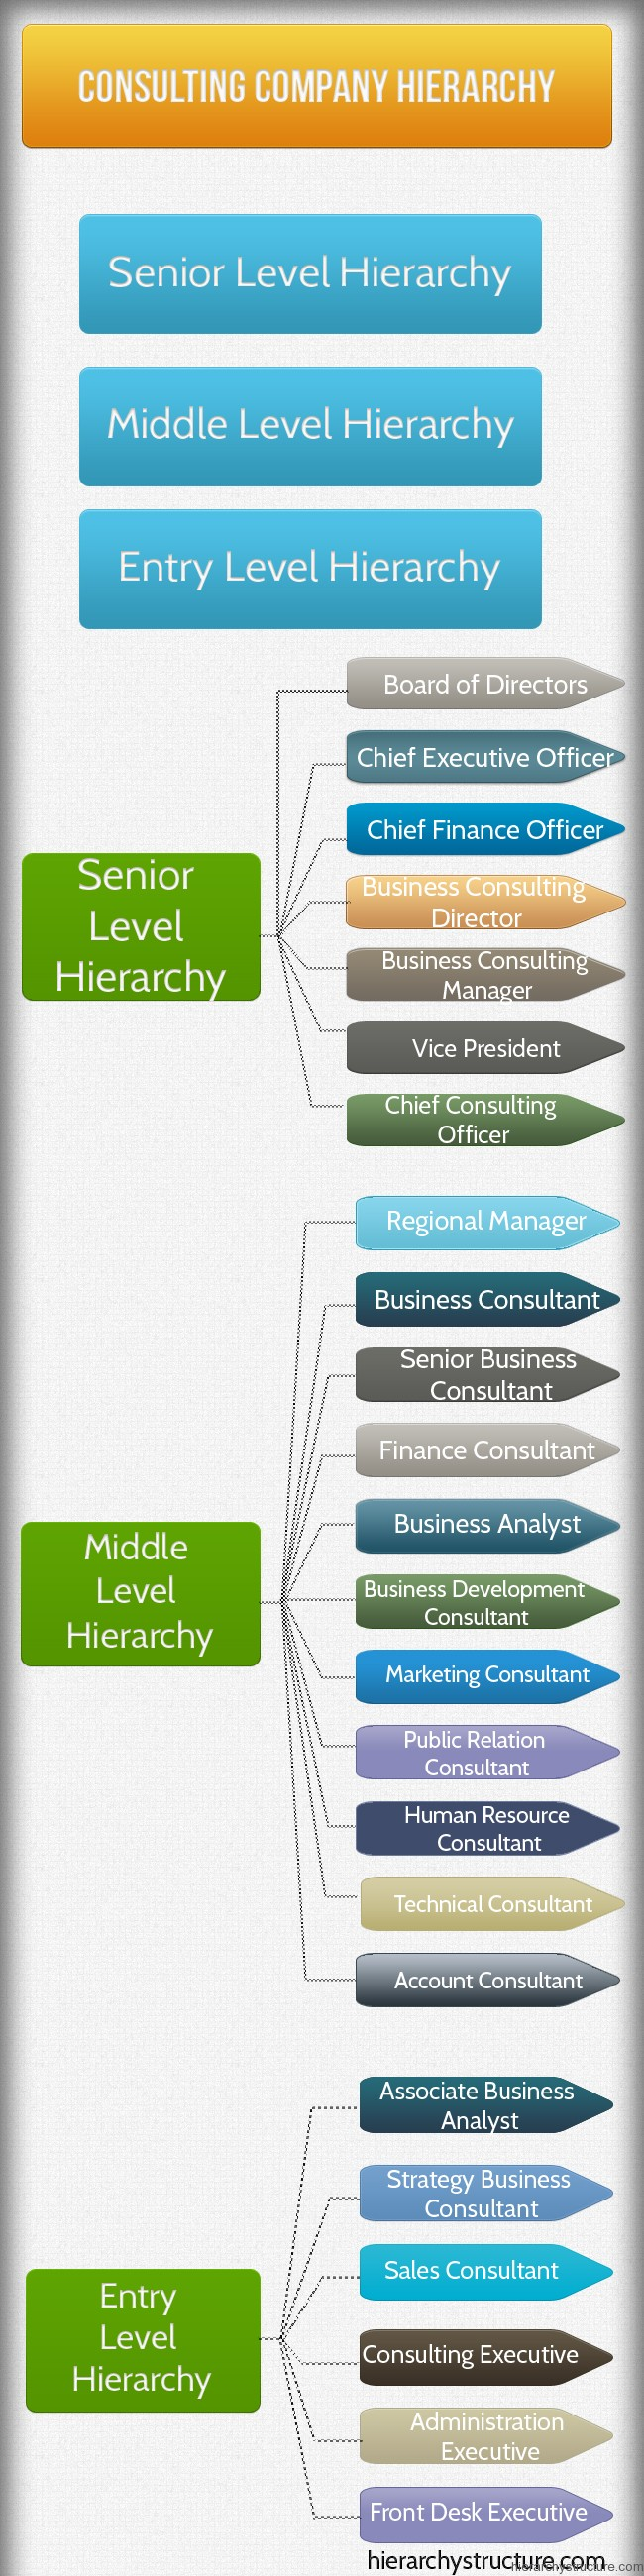 best management consulting companies